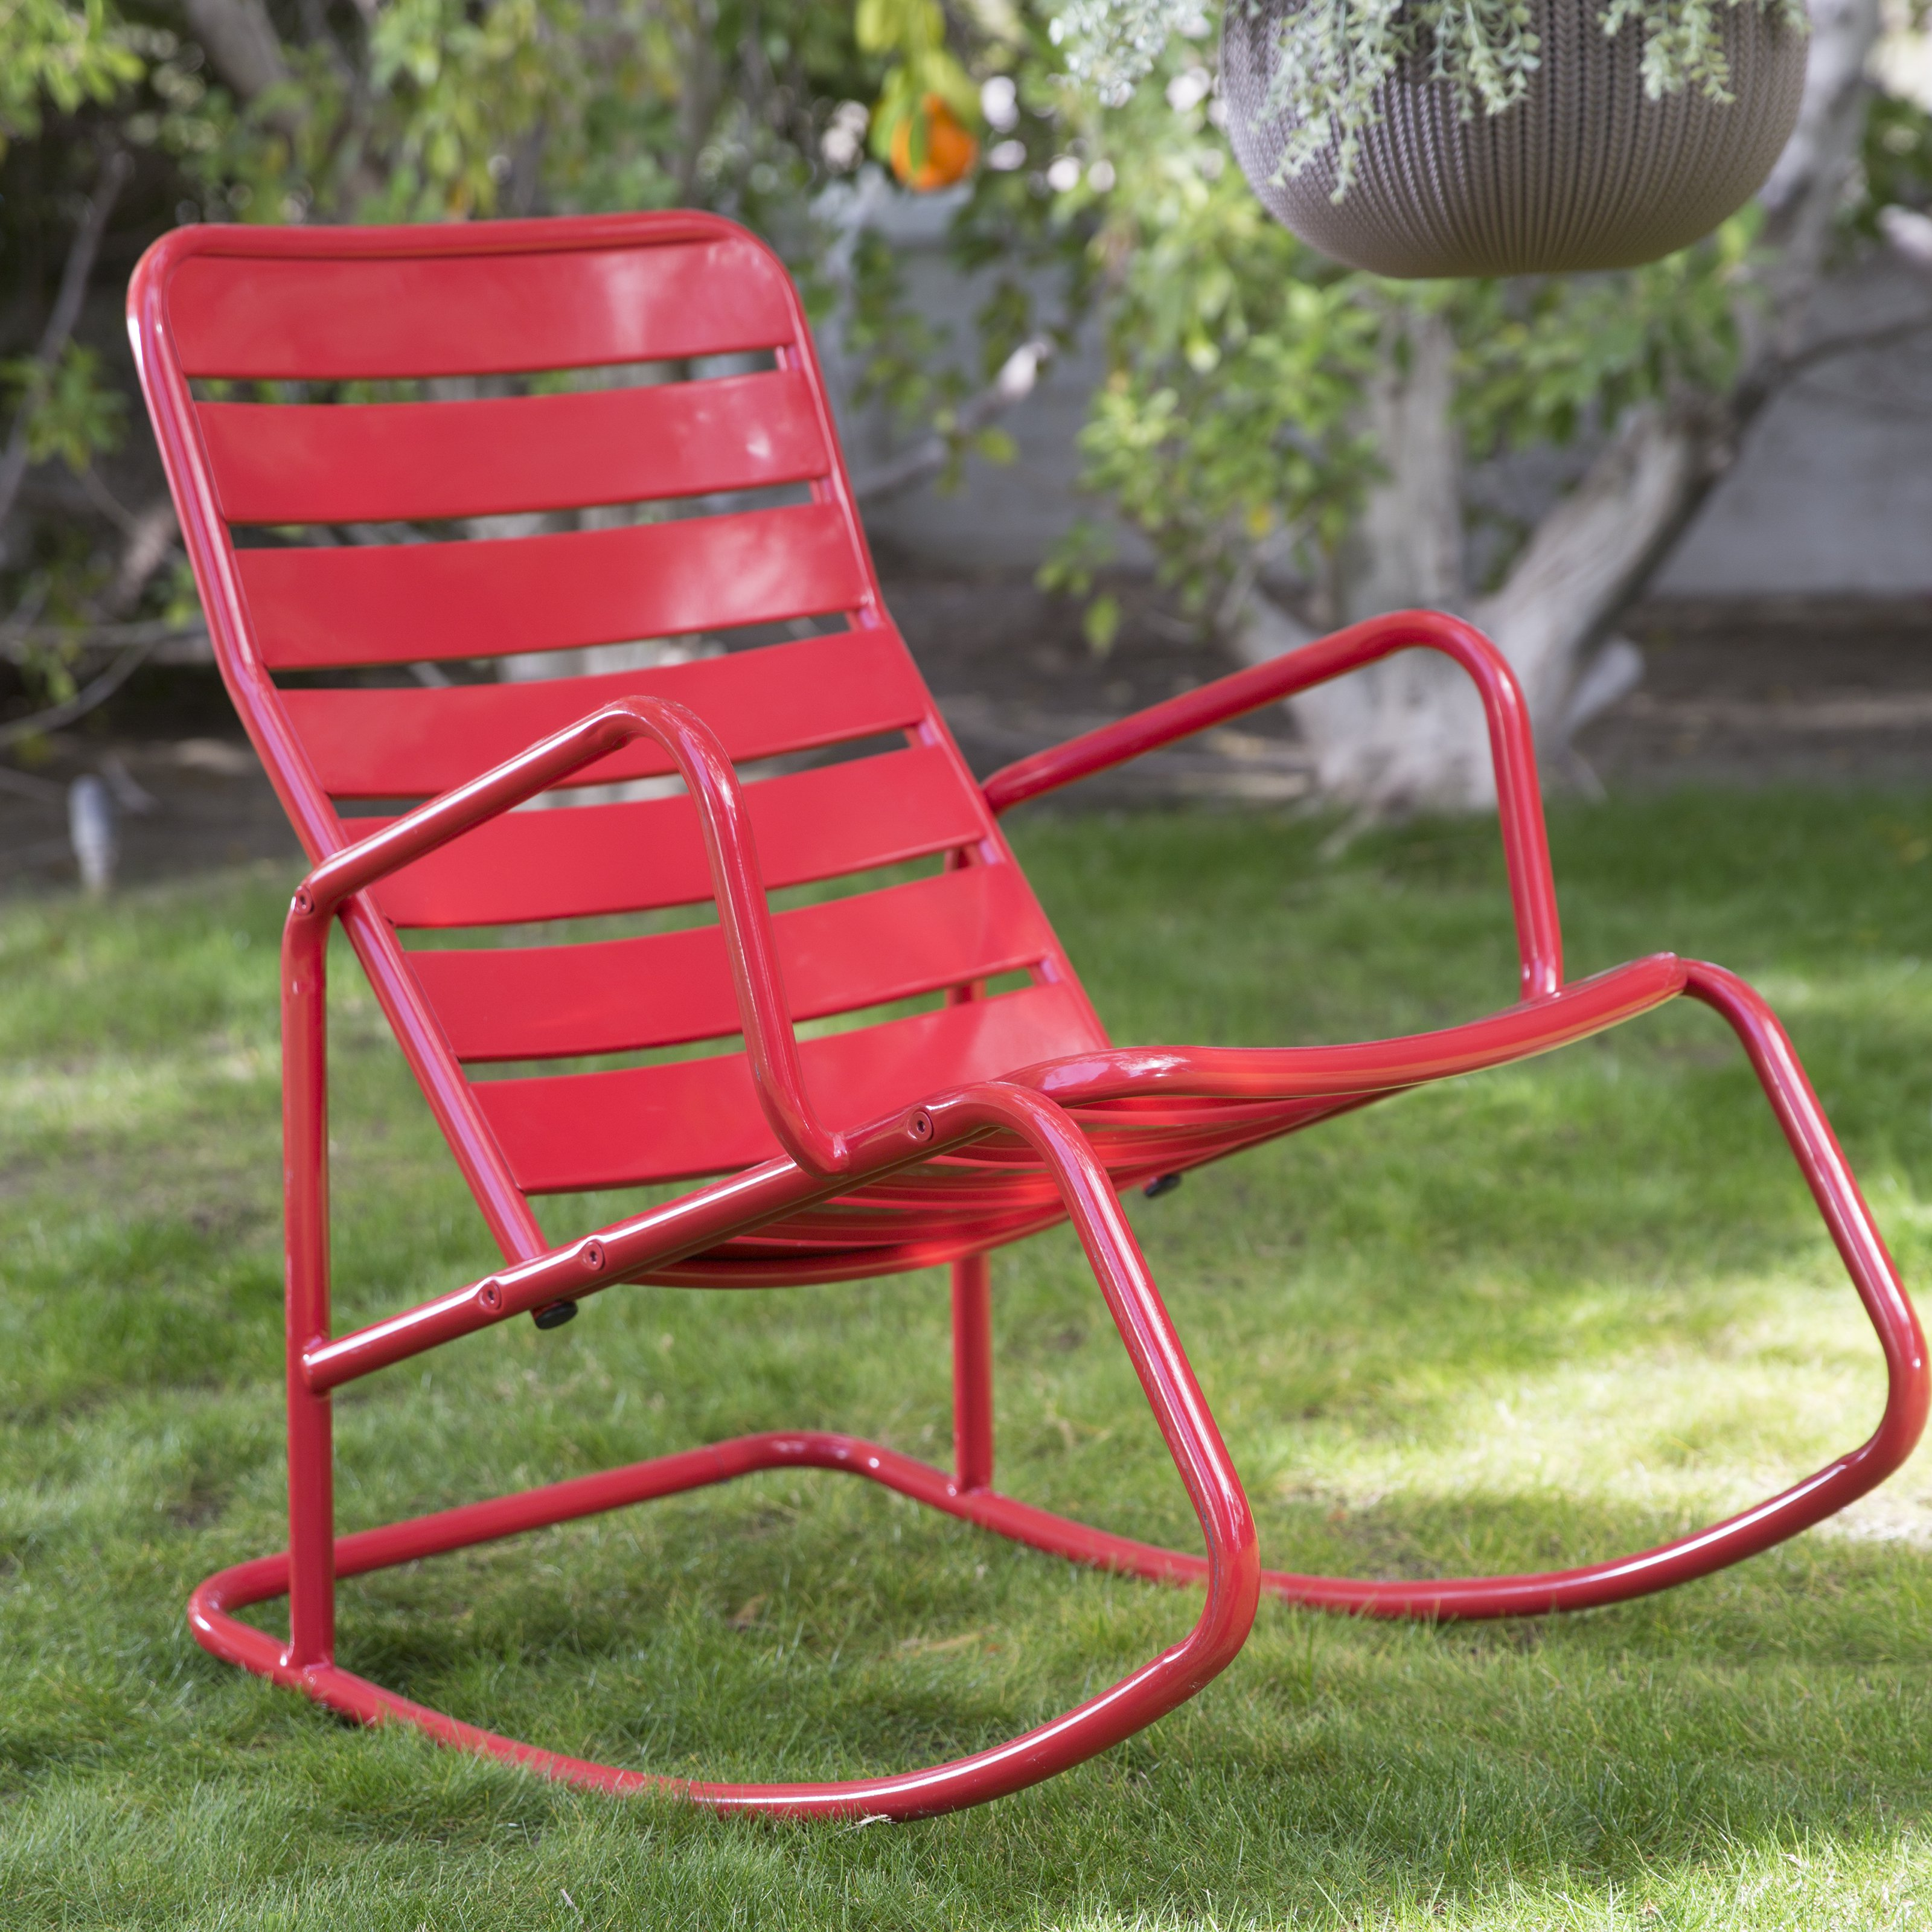 Trending Belham Living Adley Outdoor Metal Rocking Chair Set with Side Table - outdoor metal rocking chairs